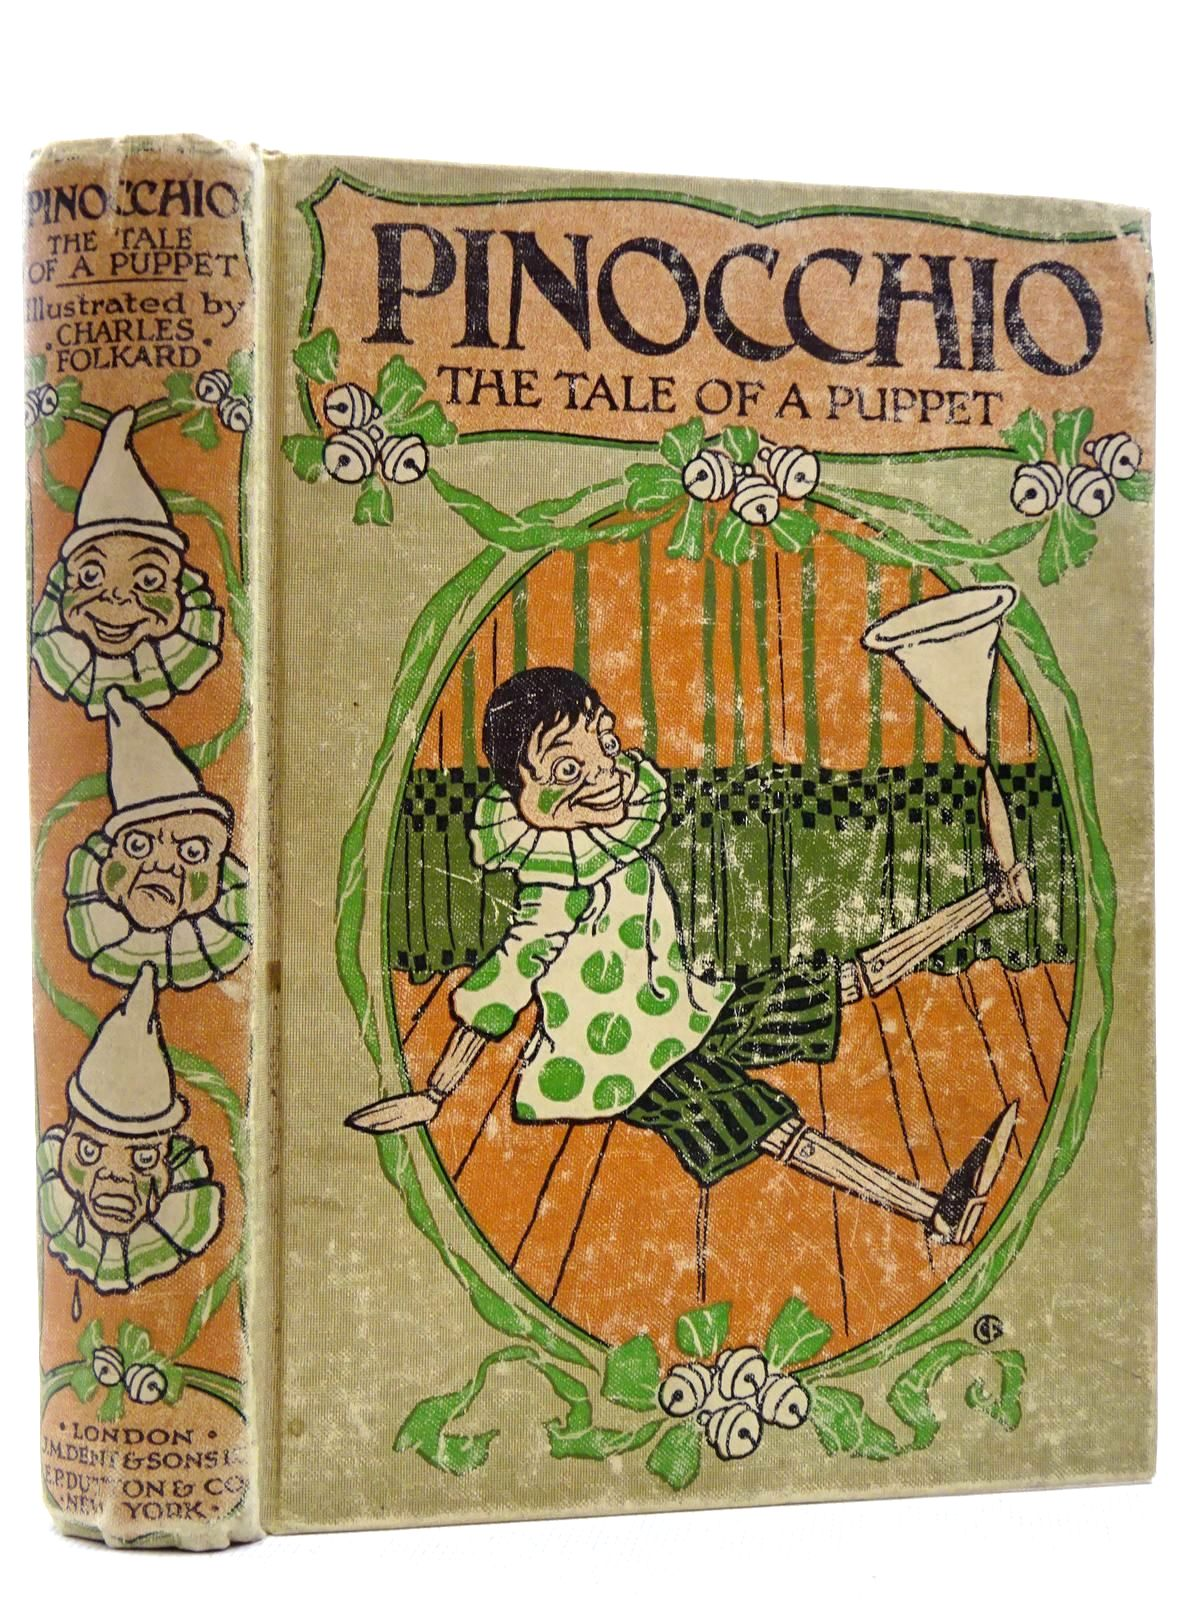 Photo of PINOCCHIO THE TALE OF A PUPPET written by Collodi, Carlo Murray, M.A. illustrated by Folkard, Charles published by J.M. Dent & Sons Ltd. (STOCK CODE: 2129037)  for sale by Stella & Rose's Books